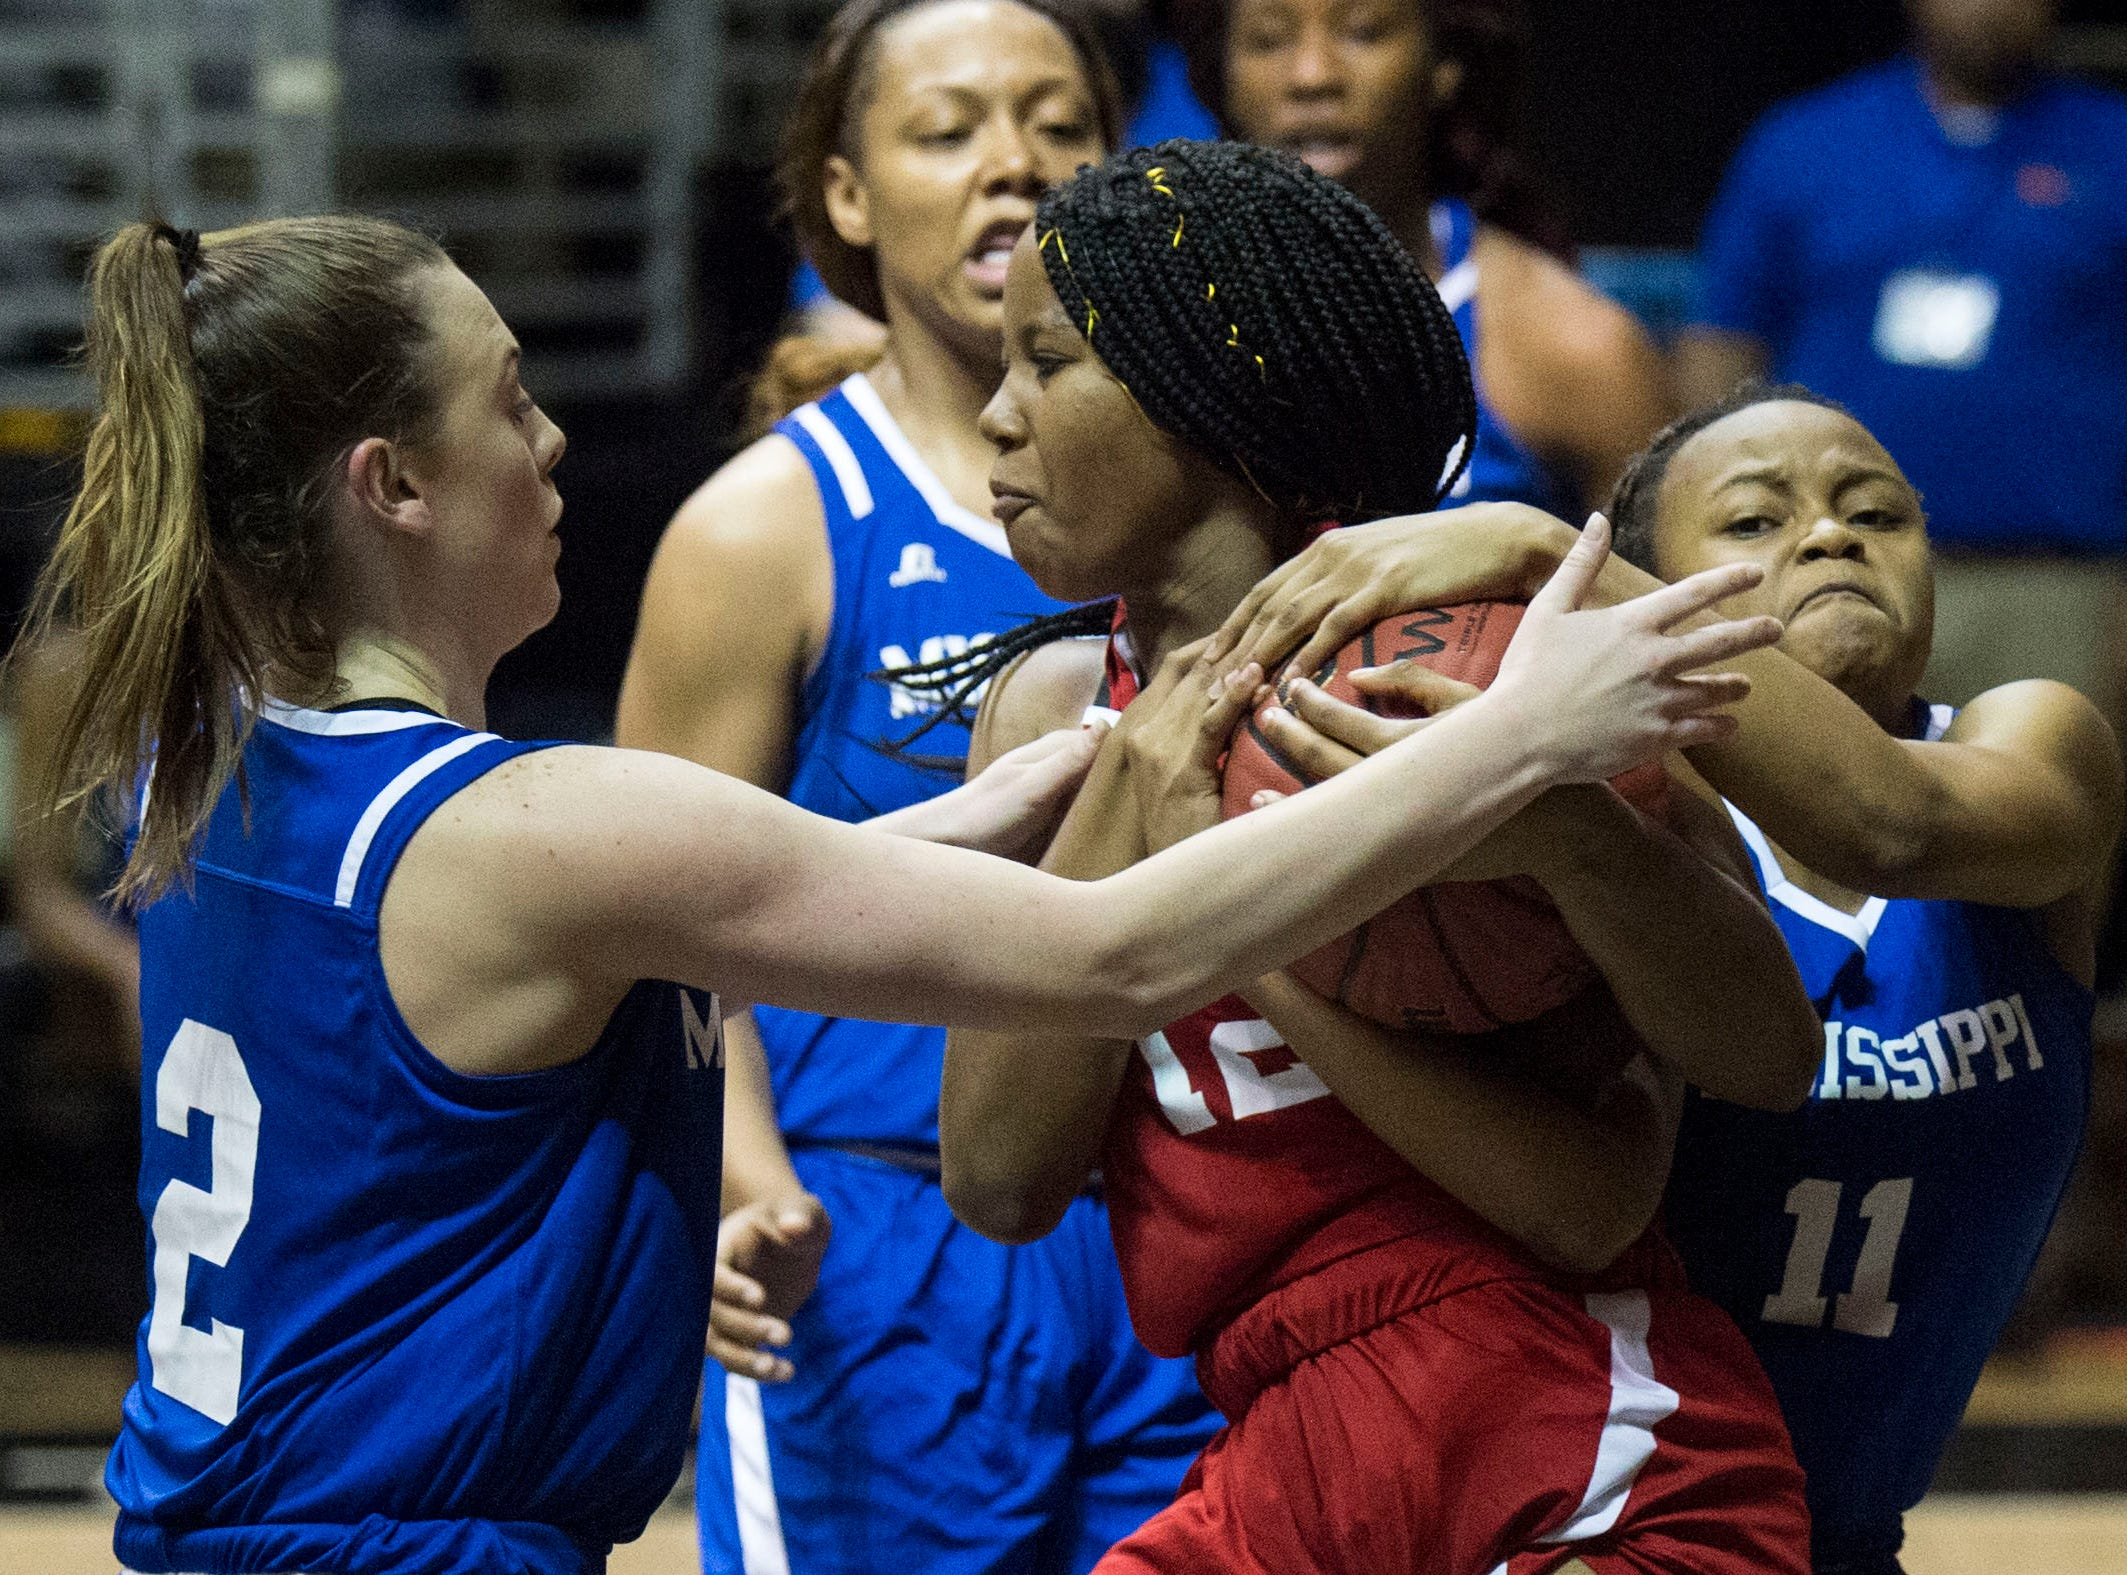 Alabama's Aniyah Smith (12) and Mississippi's Jalisa Outlaw (11) fight for a loose ball during the Alabama-Mississippi All-Star game at the Dunn-Oliver Acadome in Montgomery, Ala., on Friday, March 15, 2019. Alabama All-stars lead the Mississippi All-stars 48-34 at halftime.